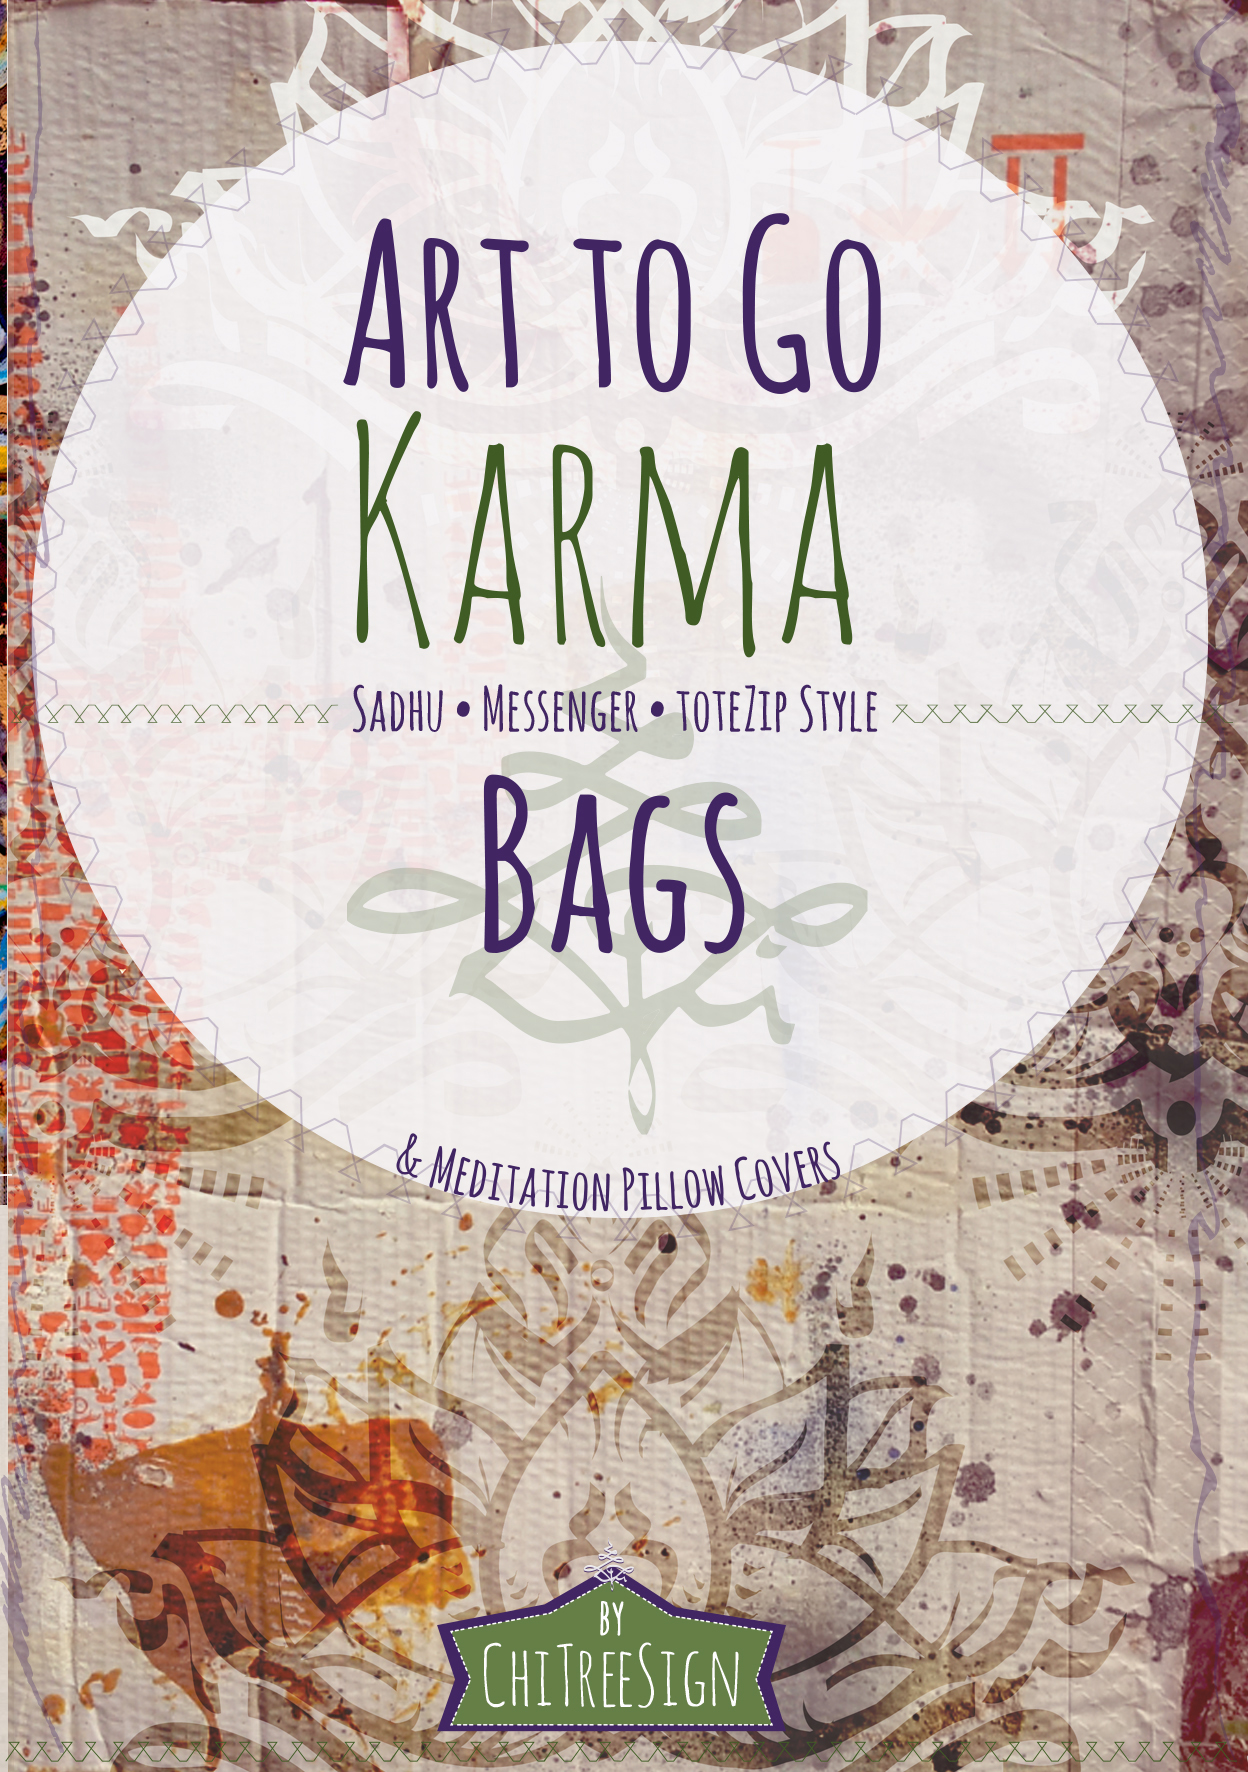 Art to Go - Karma Bags